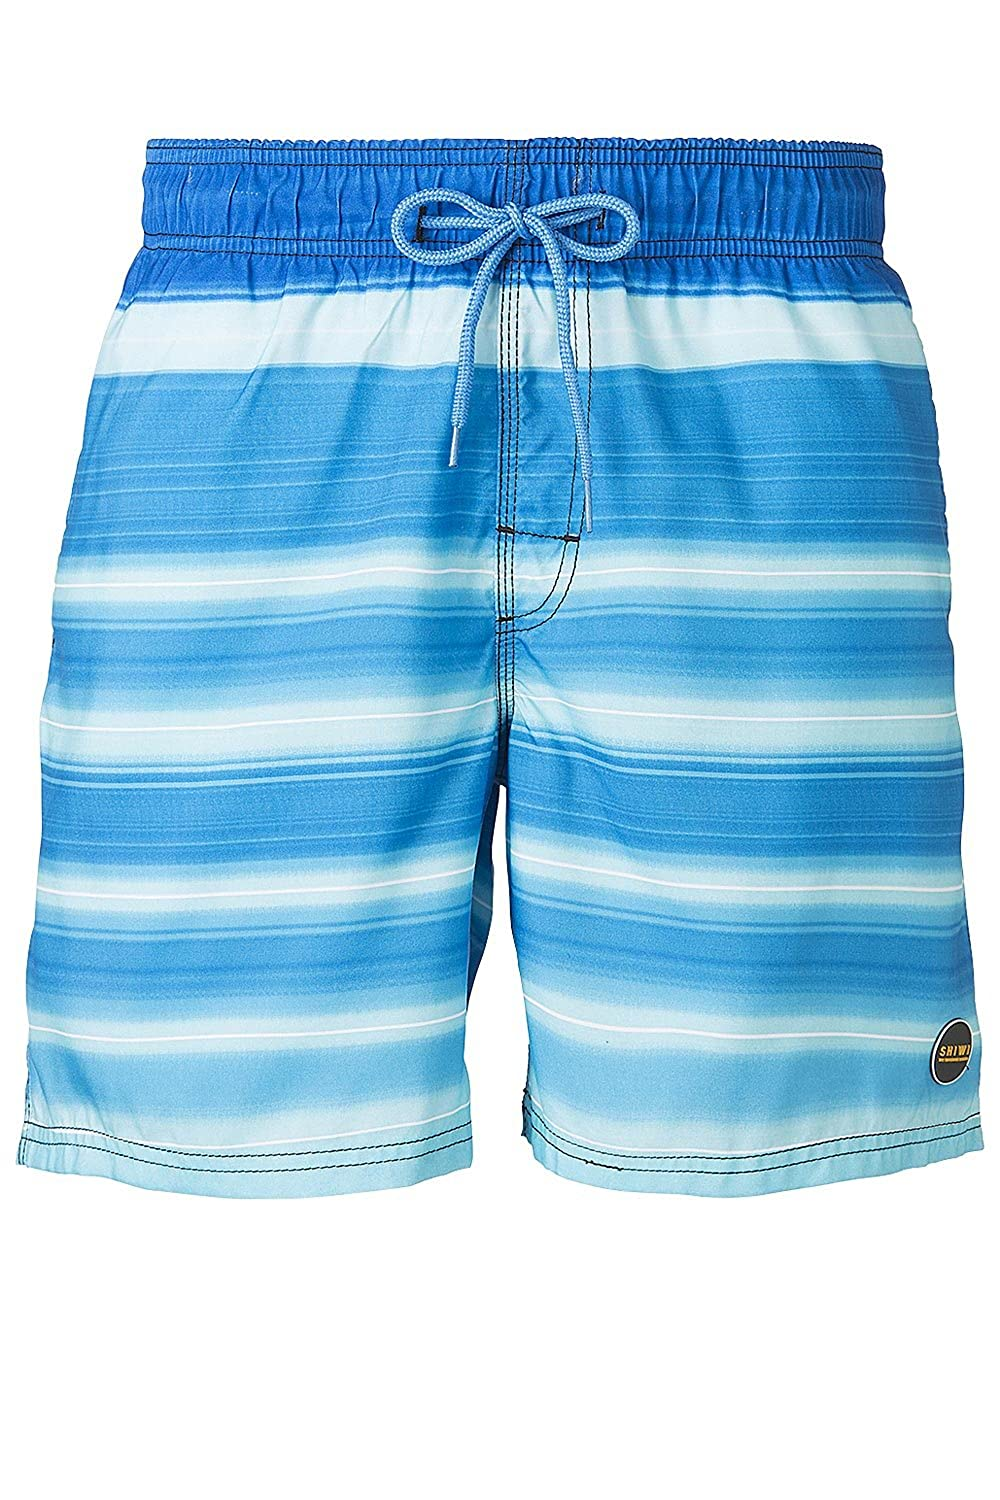 Shiwi Badeboxer Swim Beach Shorts